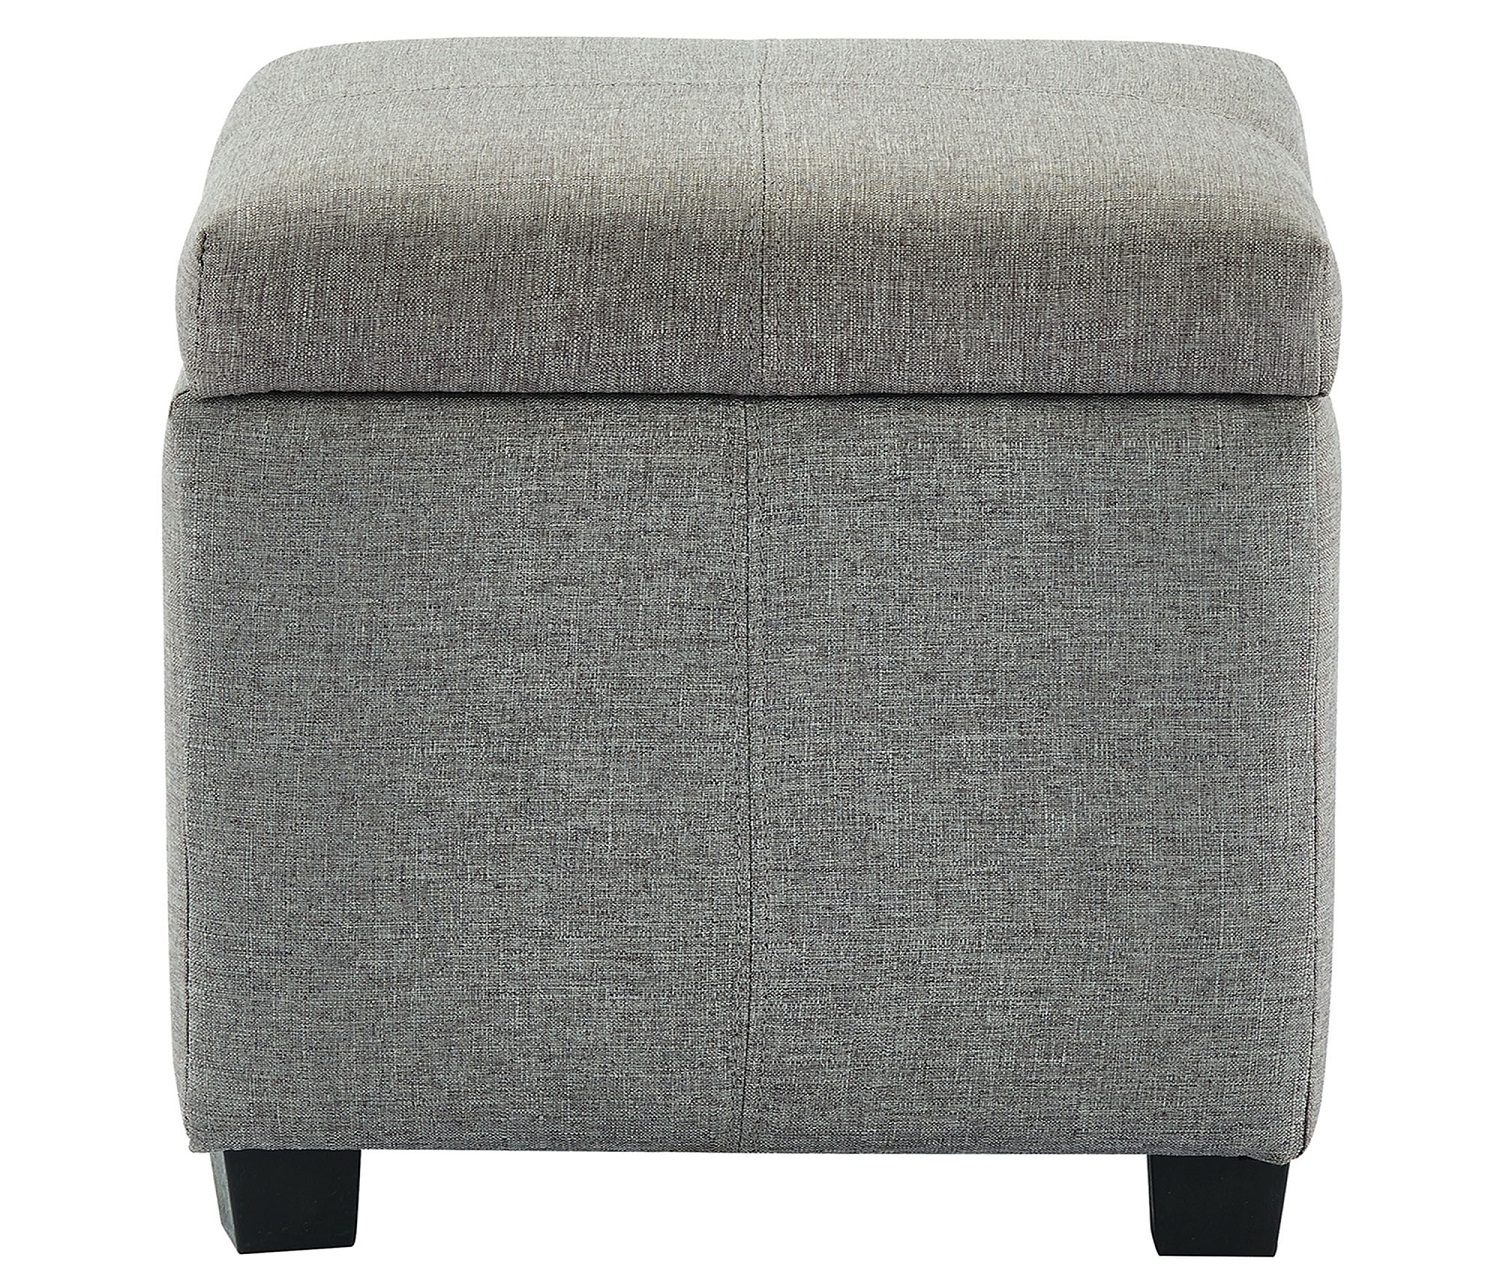 JUNO-STORAGE OTTOMAN-GREY, 841173032944, Ottoman by Midha Furniture to Brampton, Mississauga, Etobicoke, Toronto, Scraborough, Caledon, Oakville, Markham, Ajax, Pickering, Oshawa, Richmondhill, Kitchener, Hamilton, Cambridge, Waterloo and GTA area